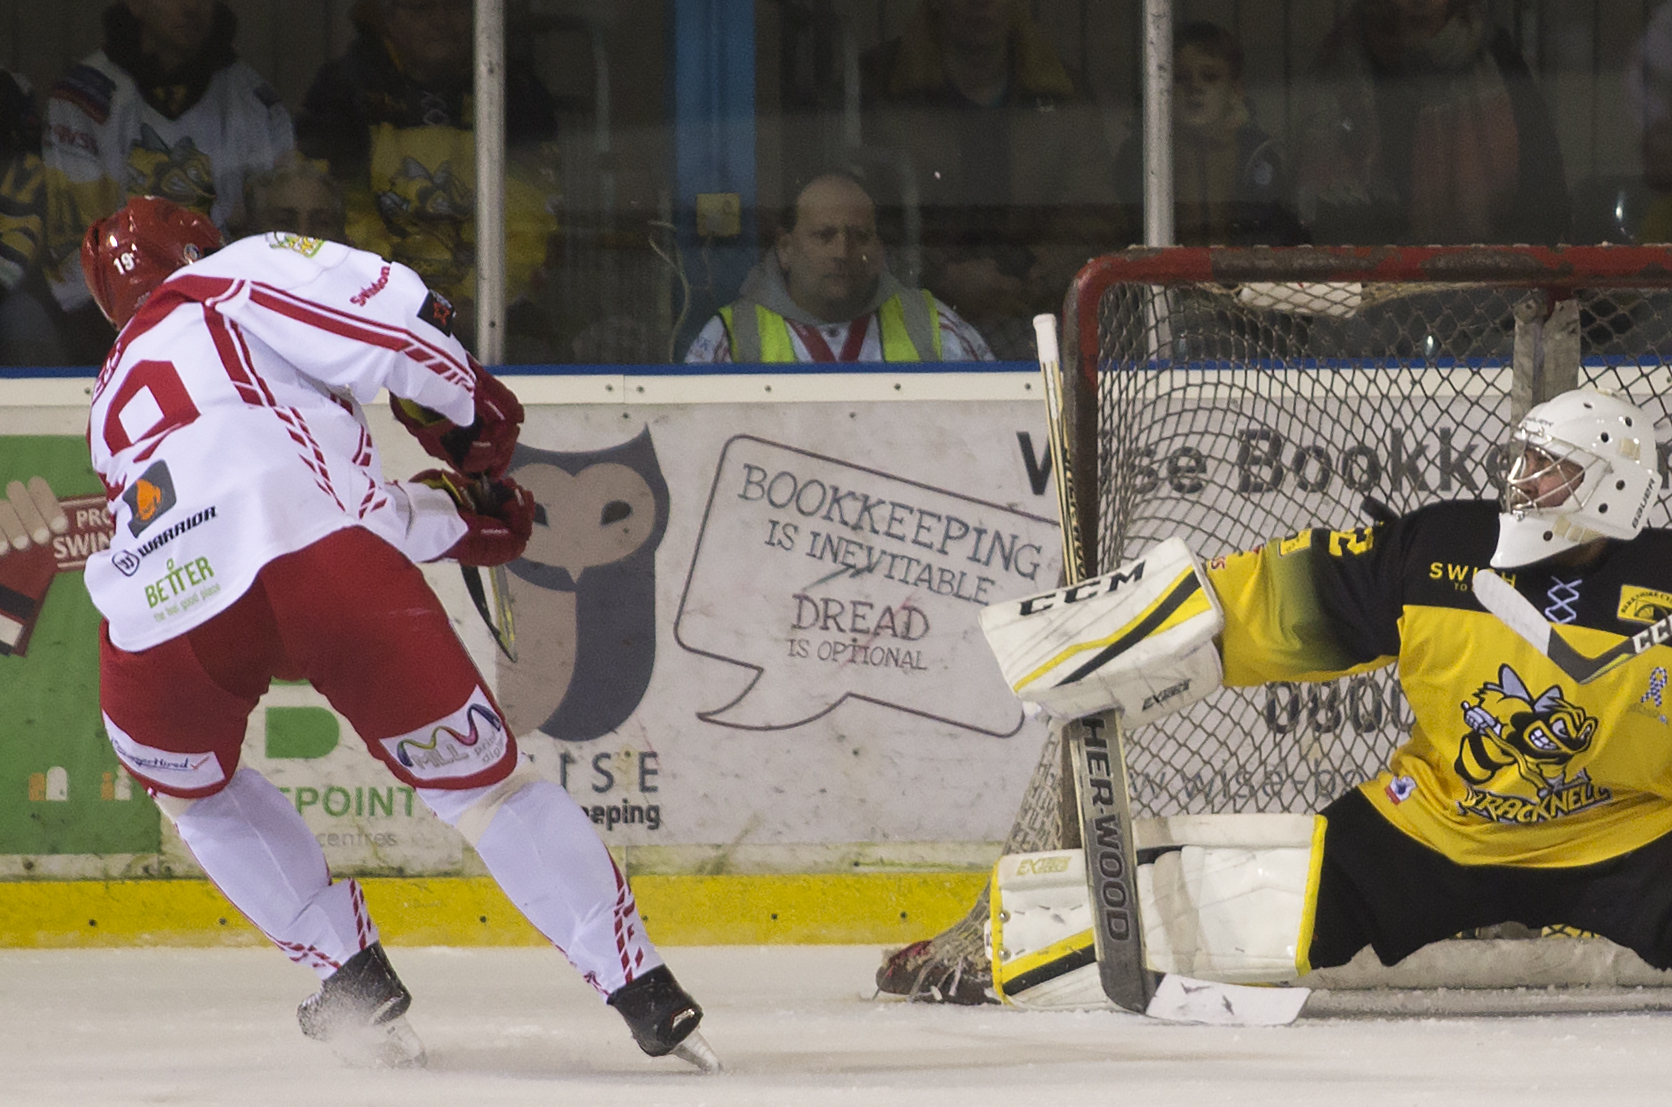 Aaron Nell scores one of Swindon Wildcats' six goals against Bracknell Bees. PICTURE: RYAN AINSCOW